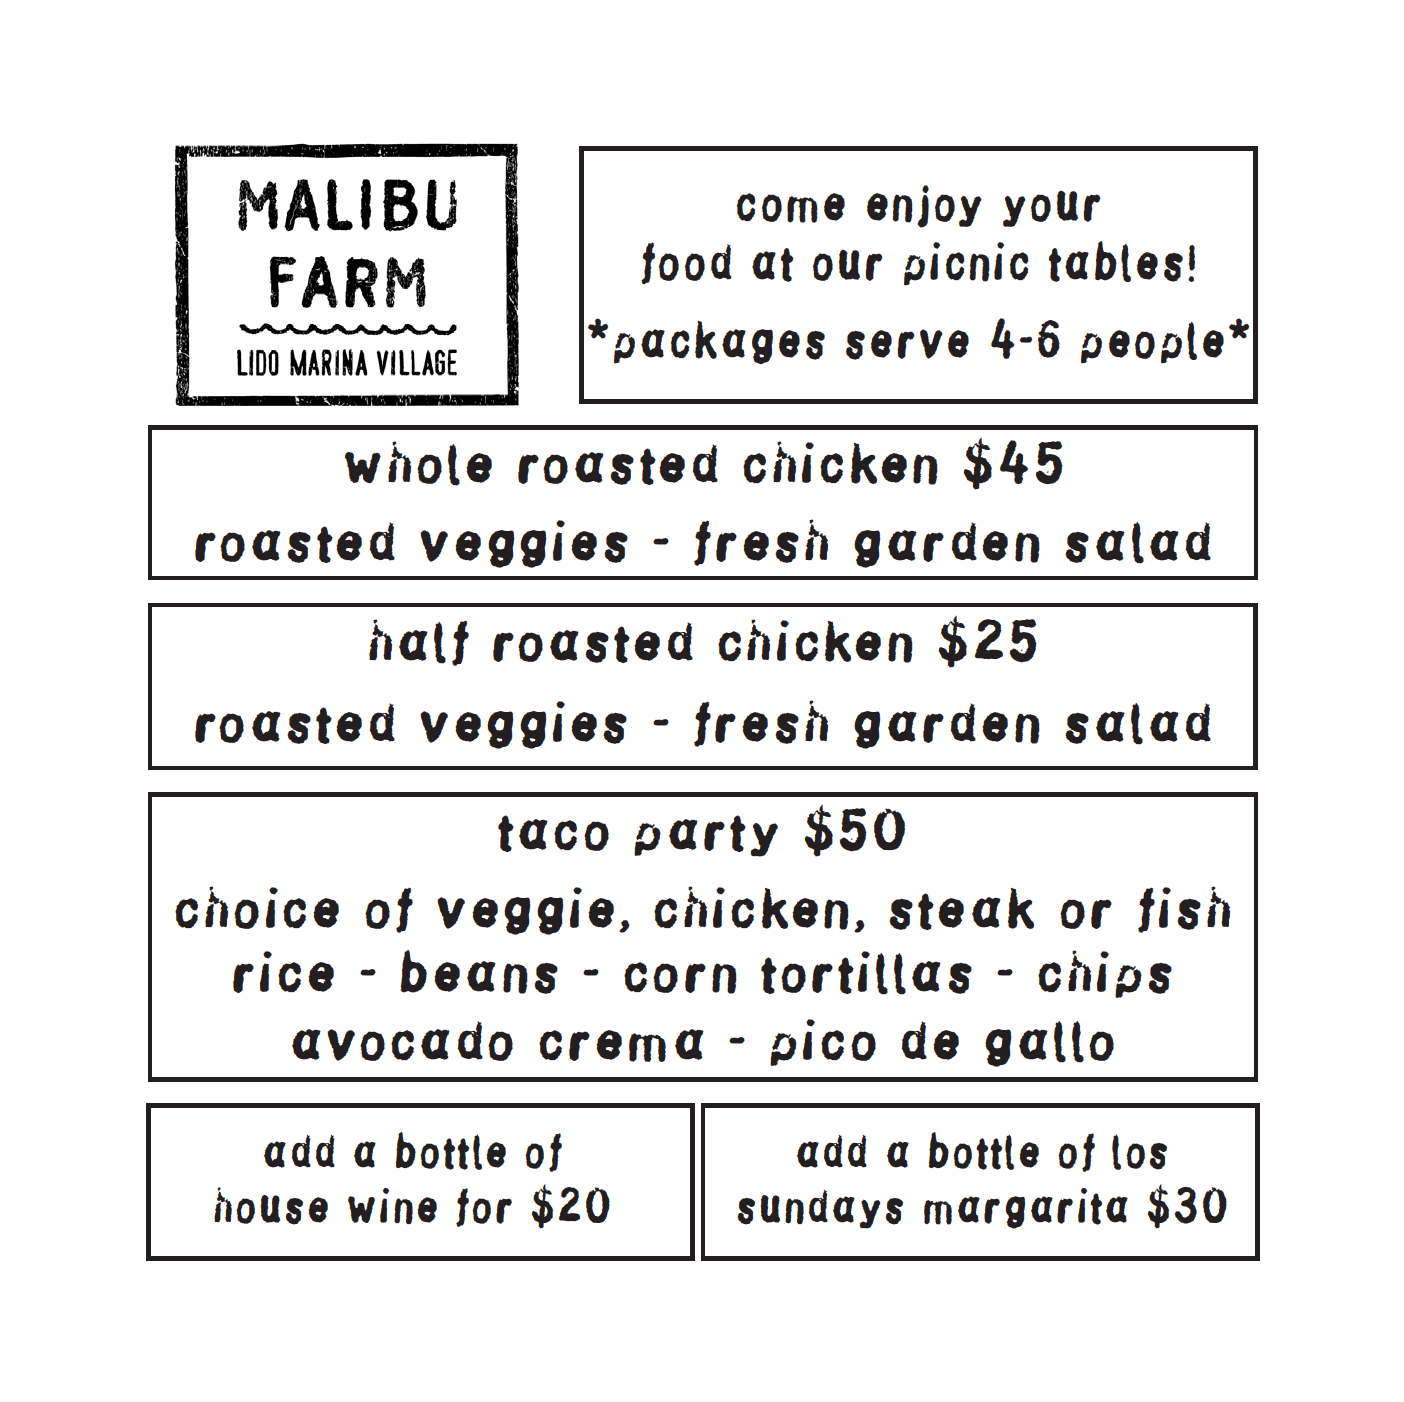 Malibu Farm Lido Take Home Food Platters: Roast Chicken, Tacos, and More!